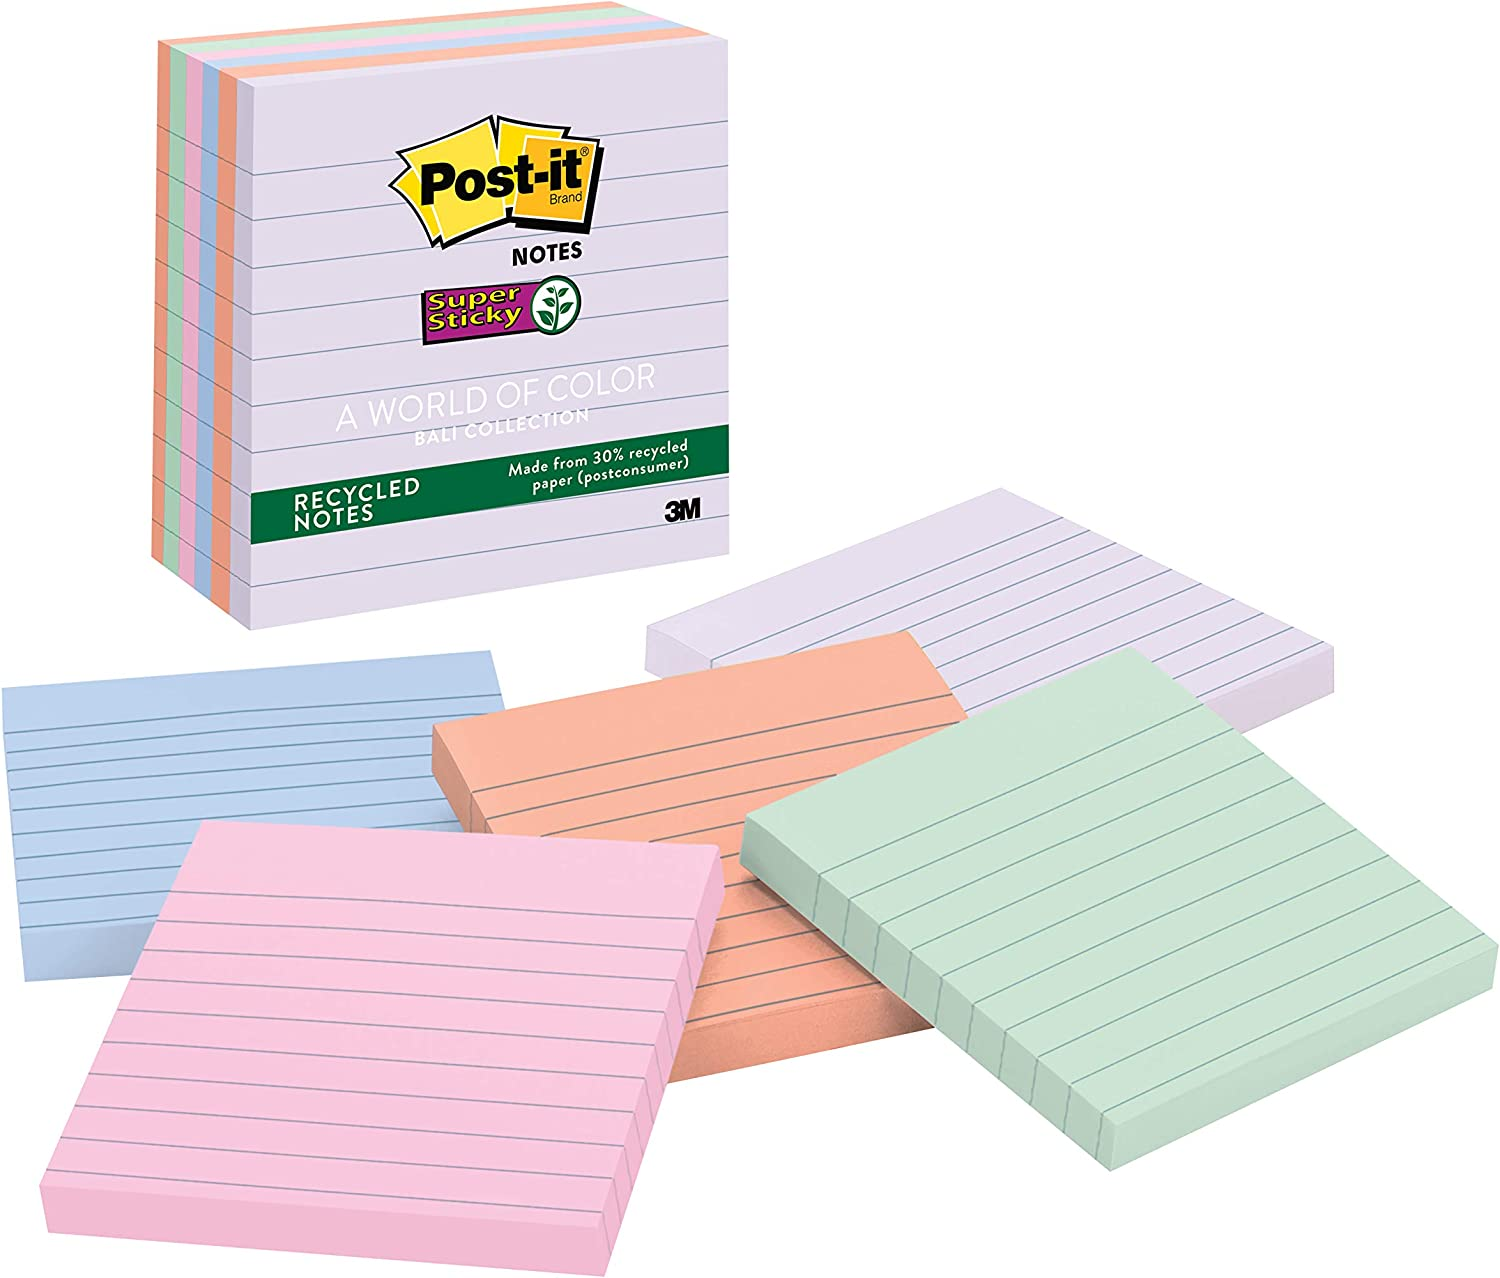 Post-it Recycled Super Sticky Notes, 2x Sticking Power, 4 in x 4 in, Bali Collection, Lined, 6 Pads/Pack (675-6SSNRP)